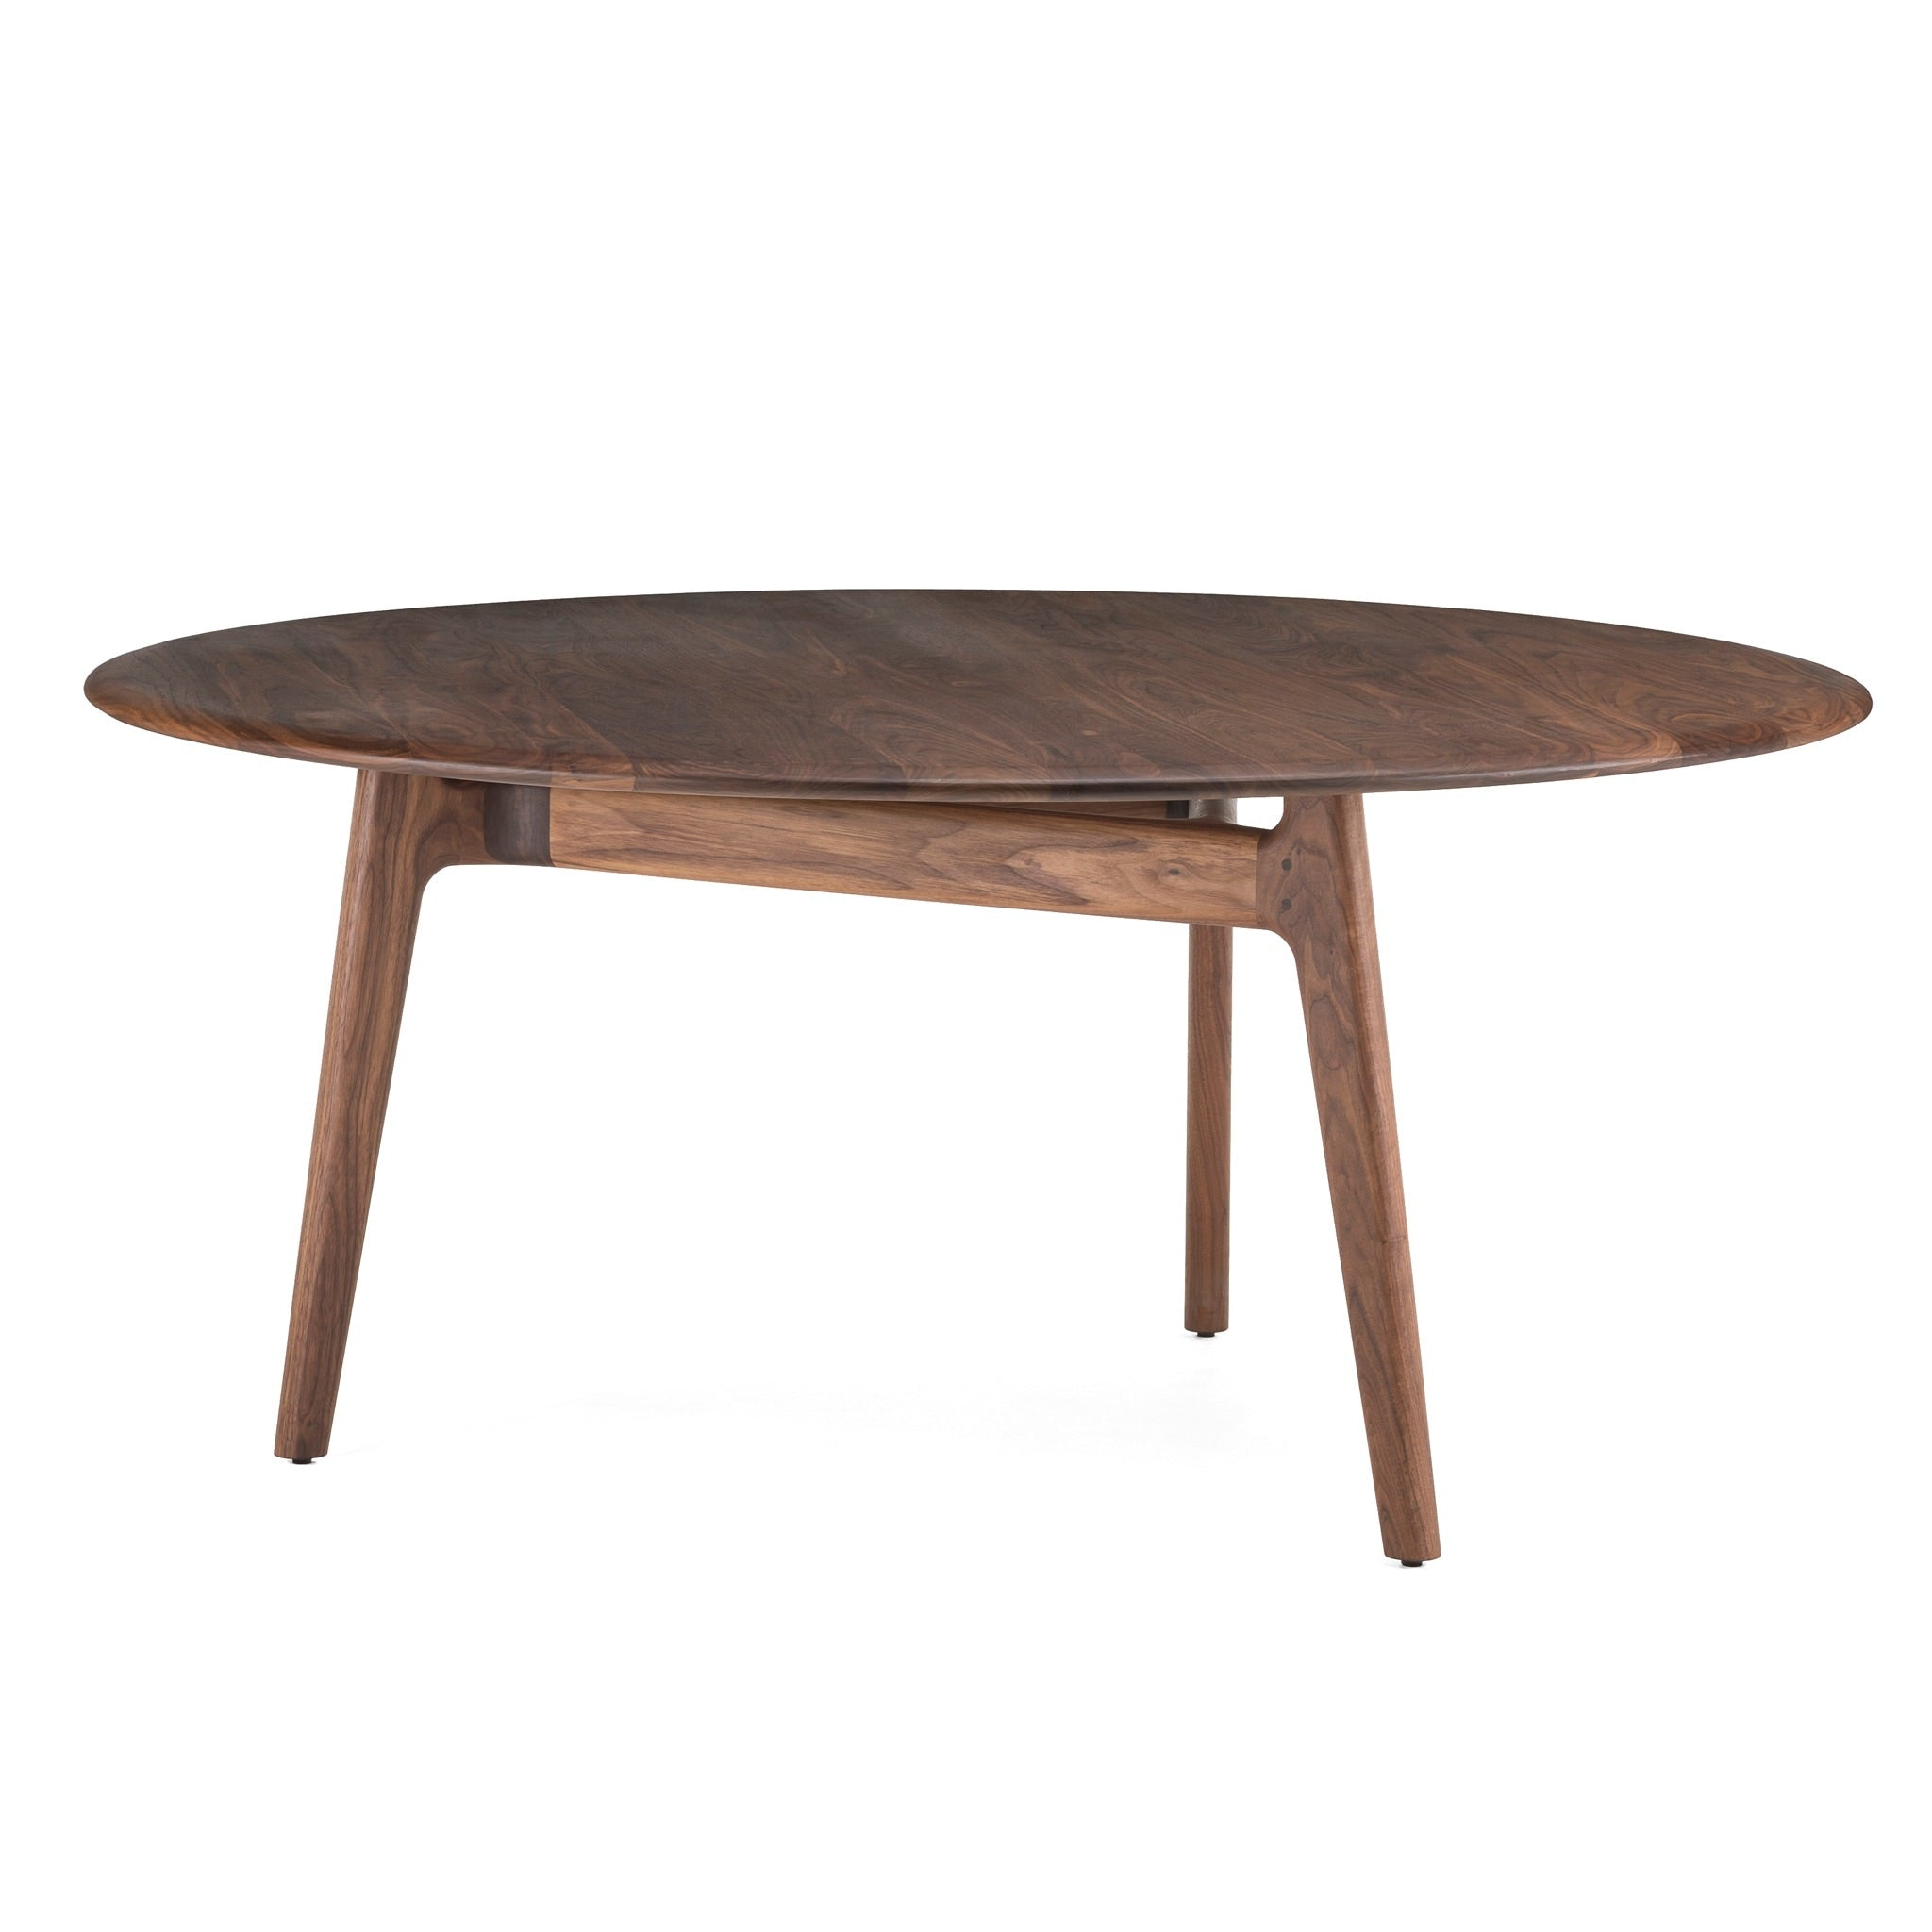 Solo Round Table by Neri & Hu